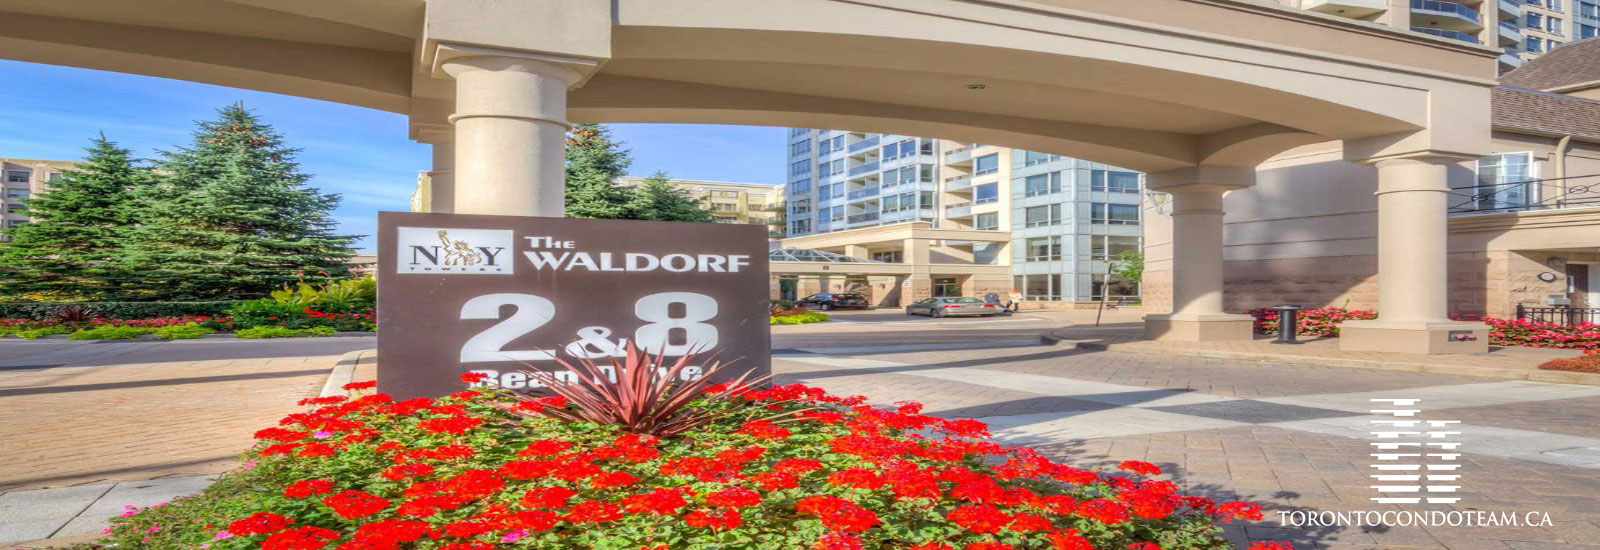 2-8 Rean Drive Condos For Sale